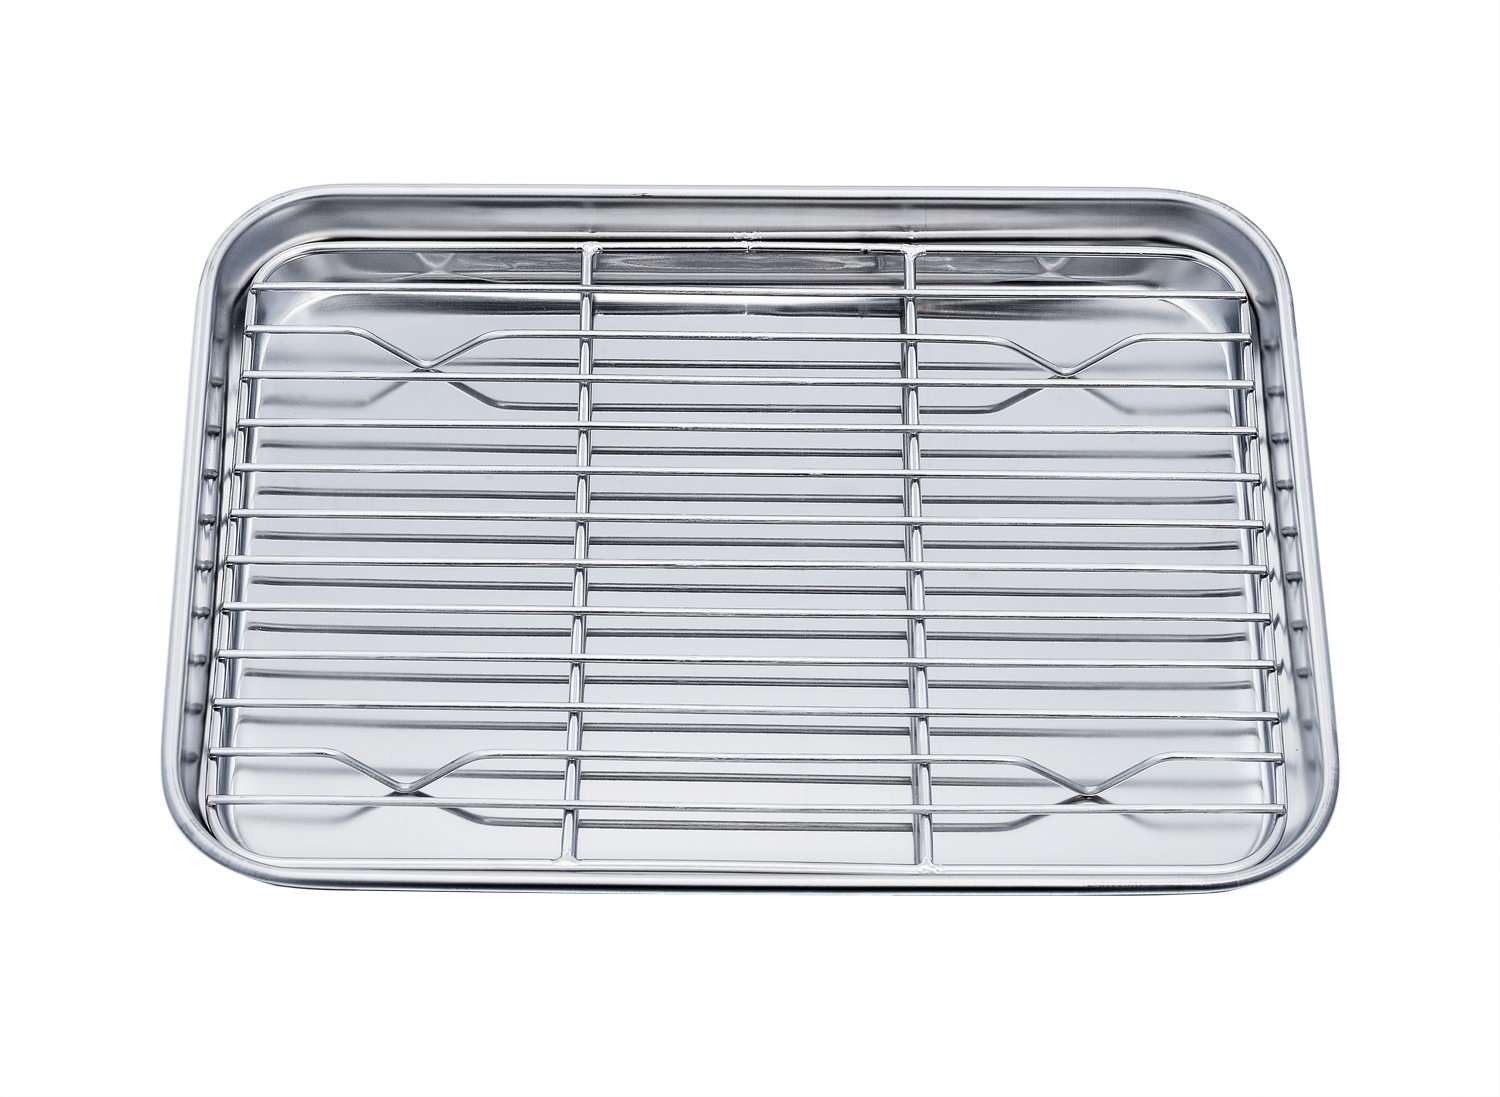 TeamFar Toaster Oven Pan Tray with Cooling Rack, Stainless Steel Toaster Ovenware broiler Pan, Compact 8''x10''x1'', Healthy & Non Toxic, Rust Free & Easy Clean - Dishwasher Safe by TeamFar